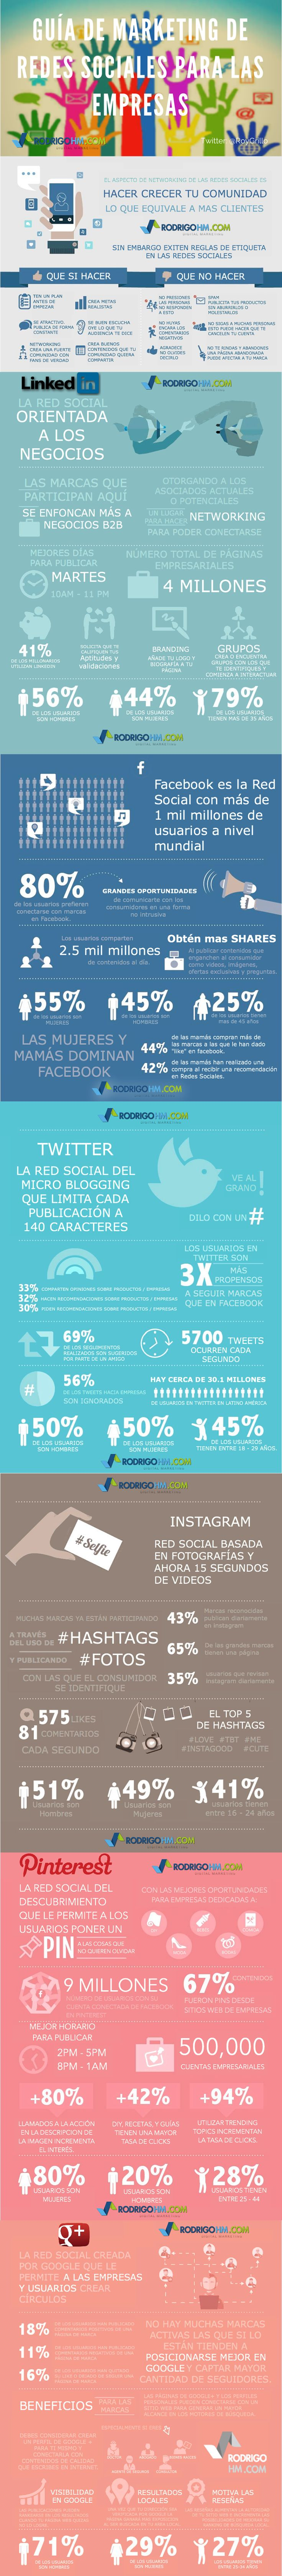 Guía de Marketing de Redes Sociales para las Empresas #infografia #marketing #socialmedia